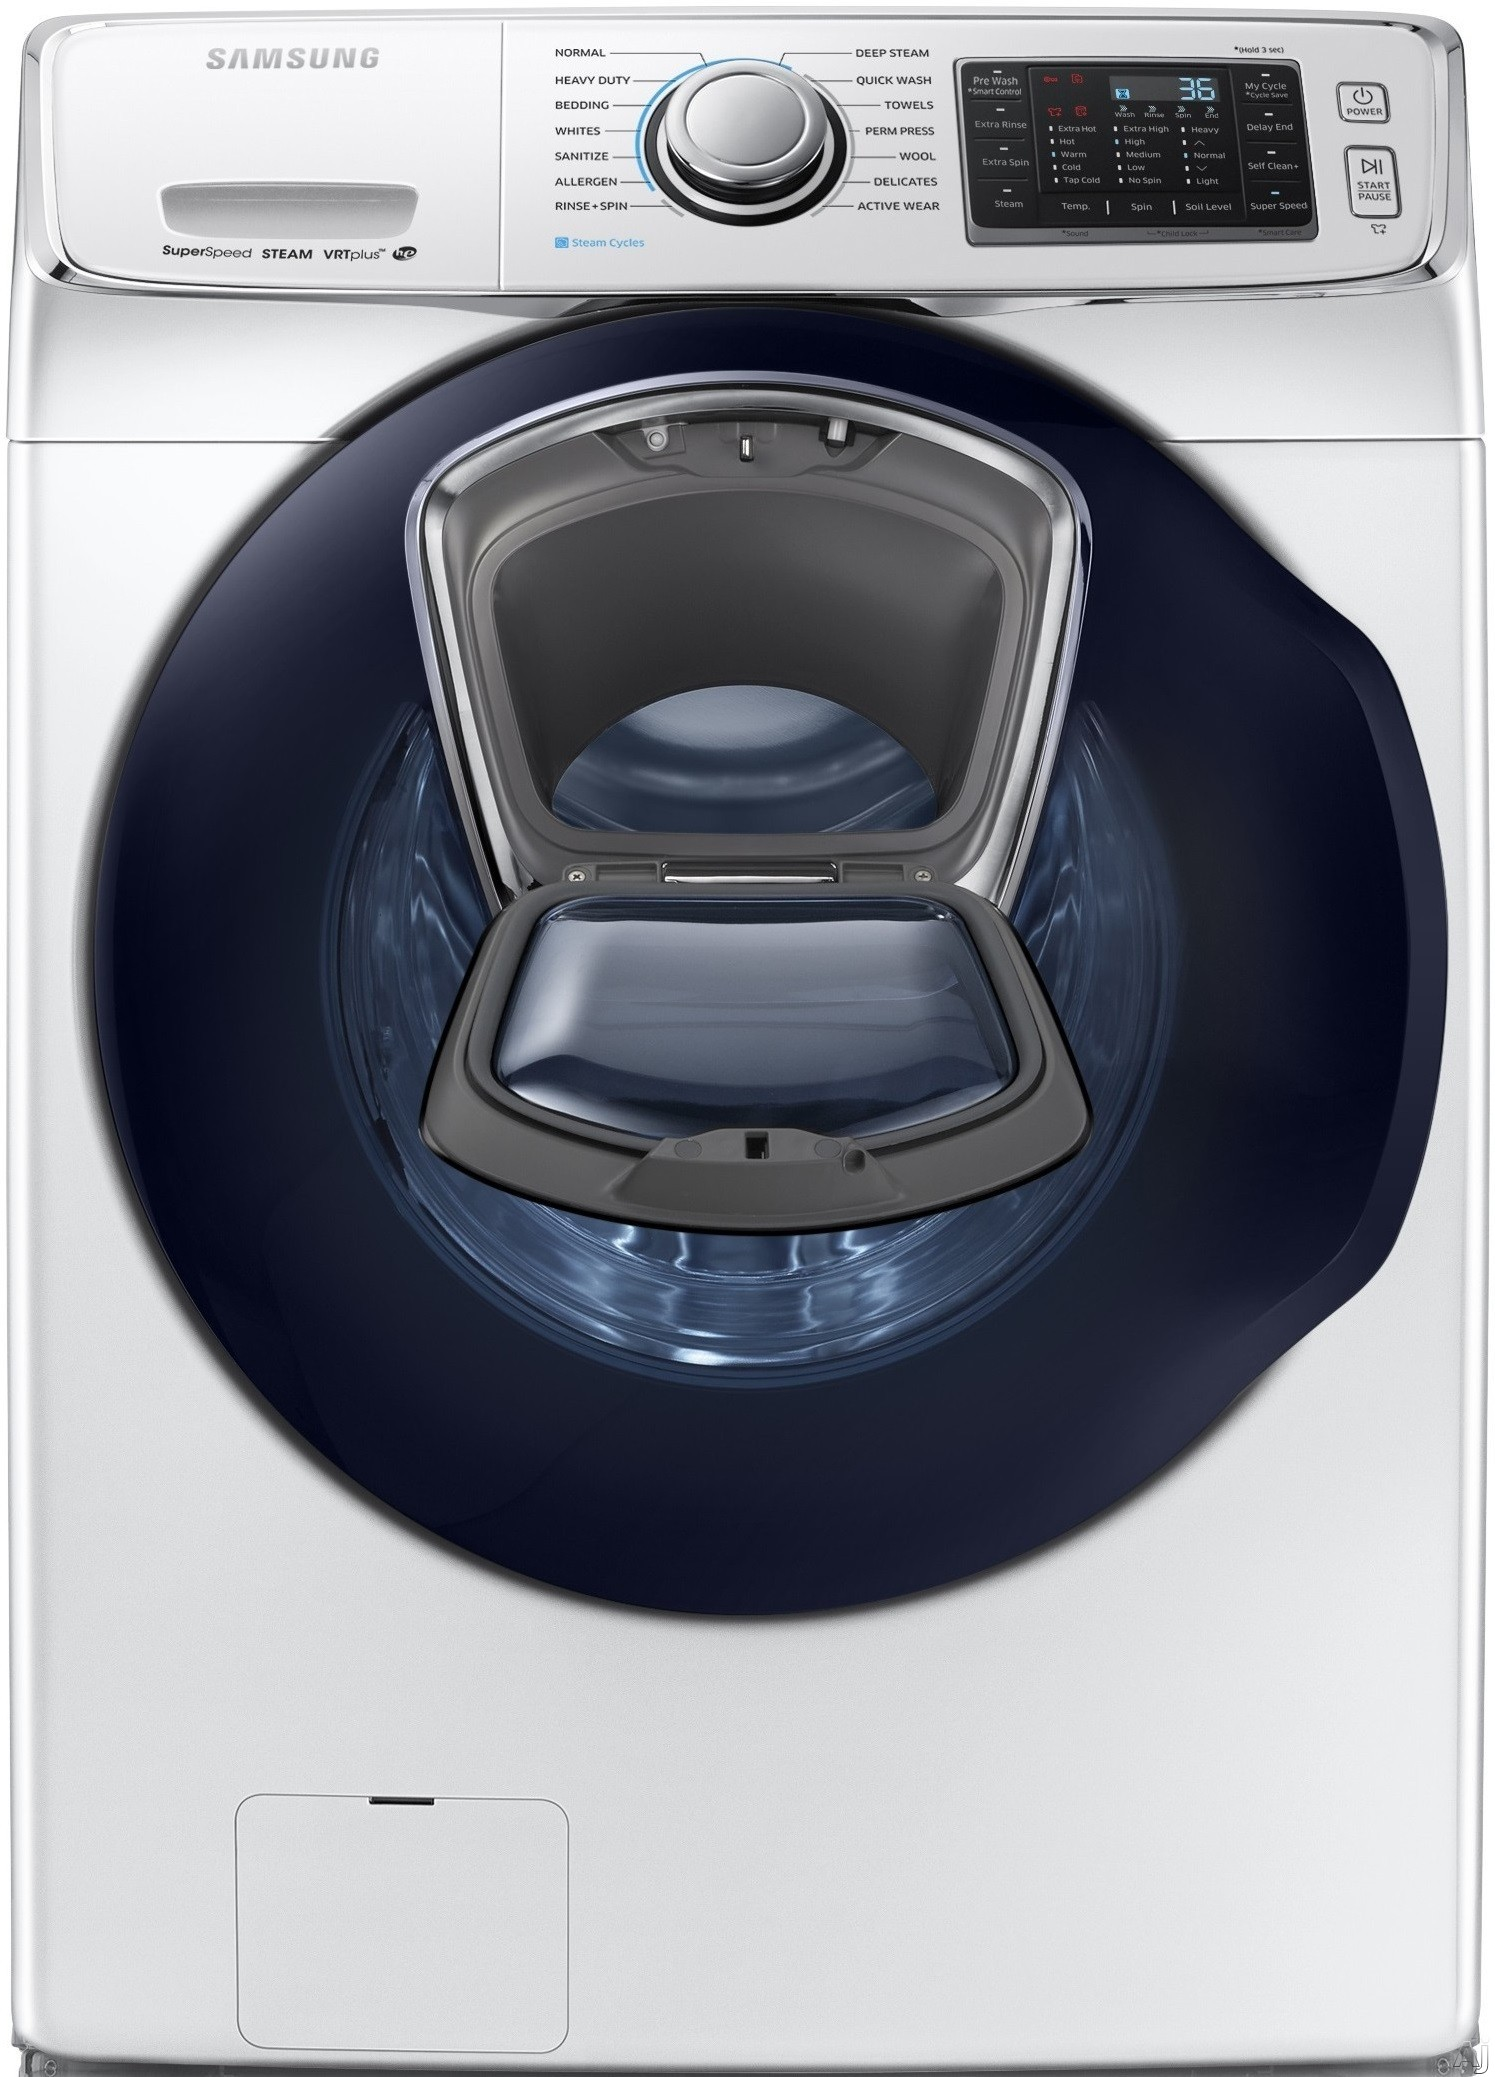 "WF45K6500AW 27"""" High Efficiency Front-Load Washer with 4.5 cu. ft. Capacity  AddWash door  Super Speed option and 14 wash cycles in"" 685998"